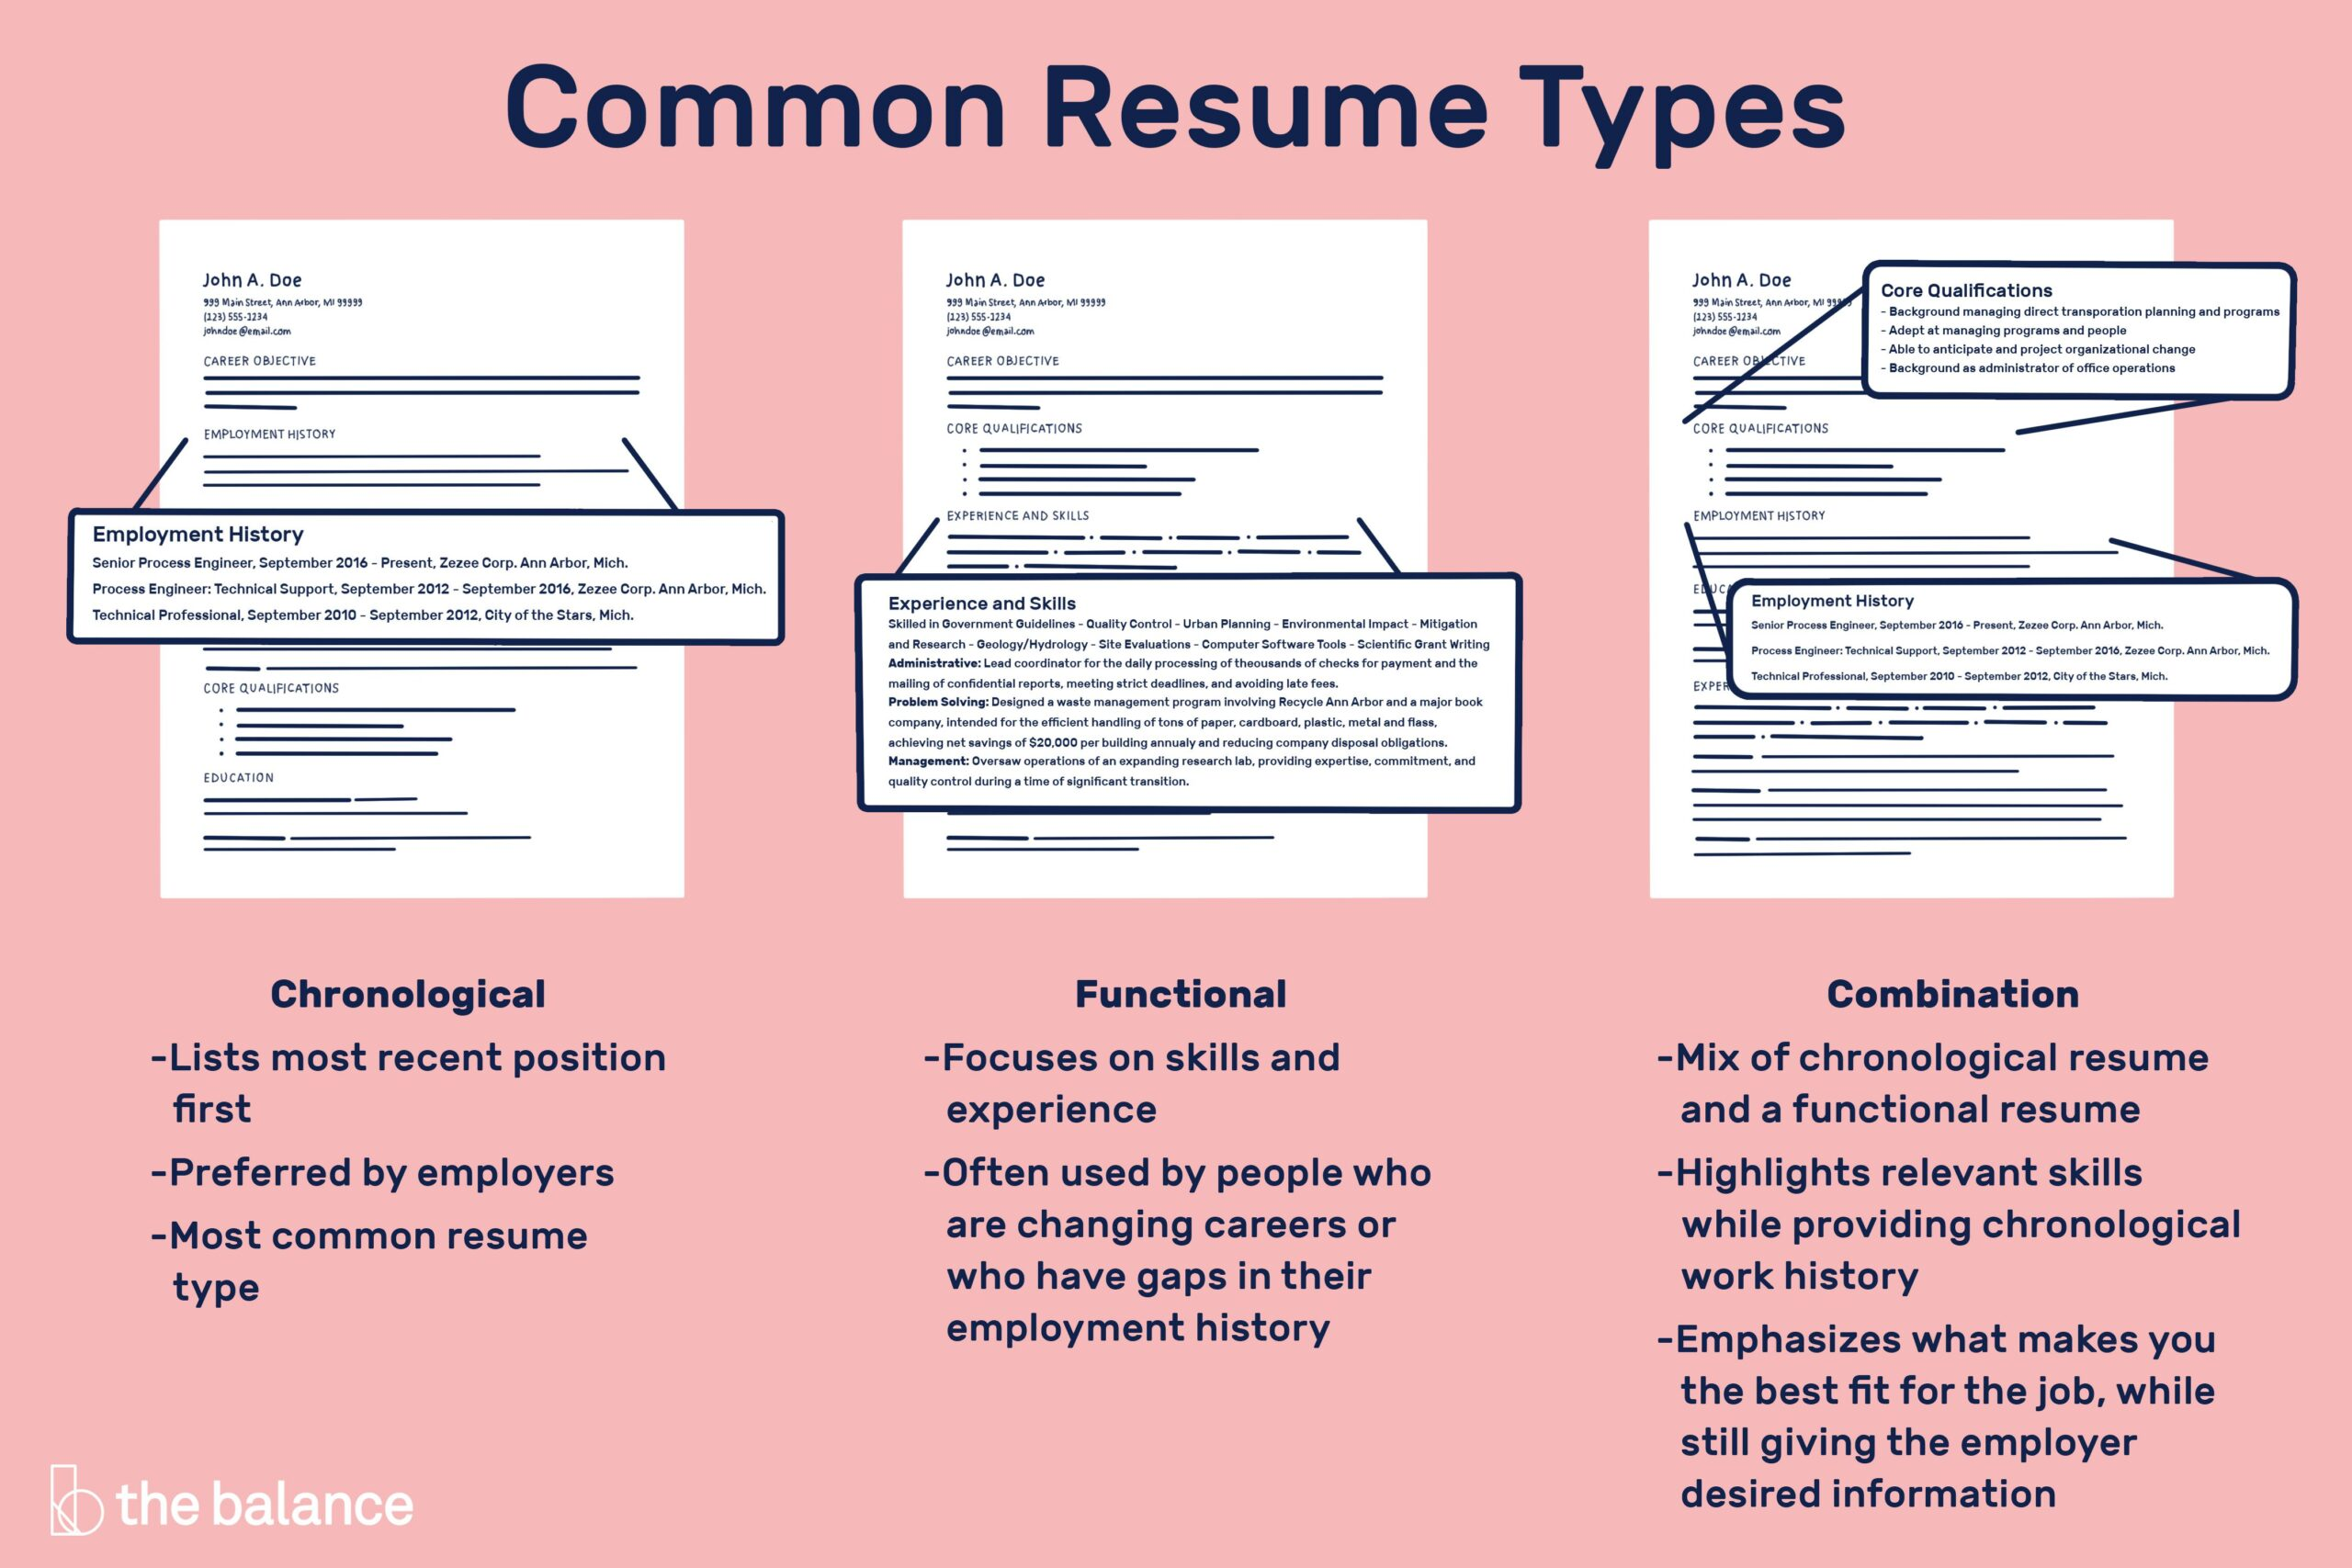 different resume types core functional template chronological combination 2063235v4 paper Resume Core Functional Resume Template